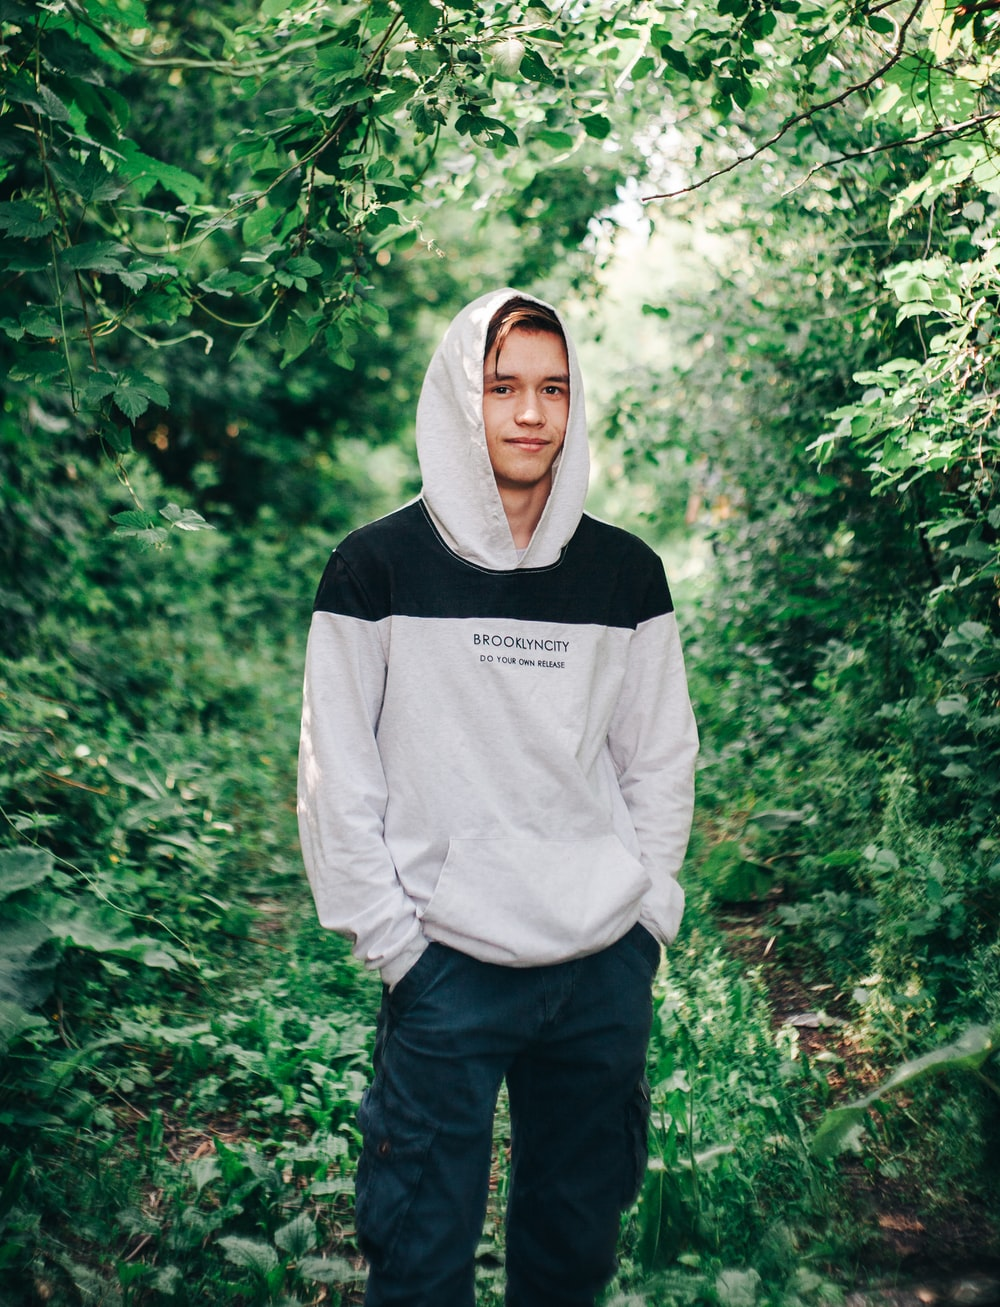 man in gray hoodie standing in forest during daytime